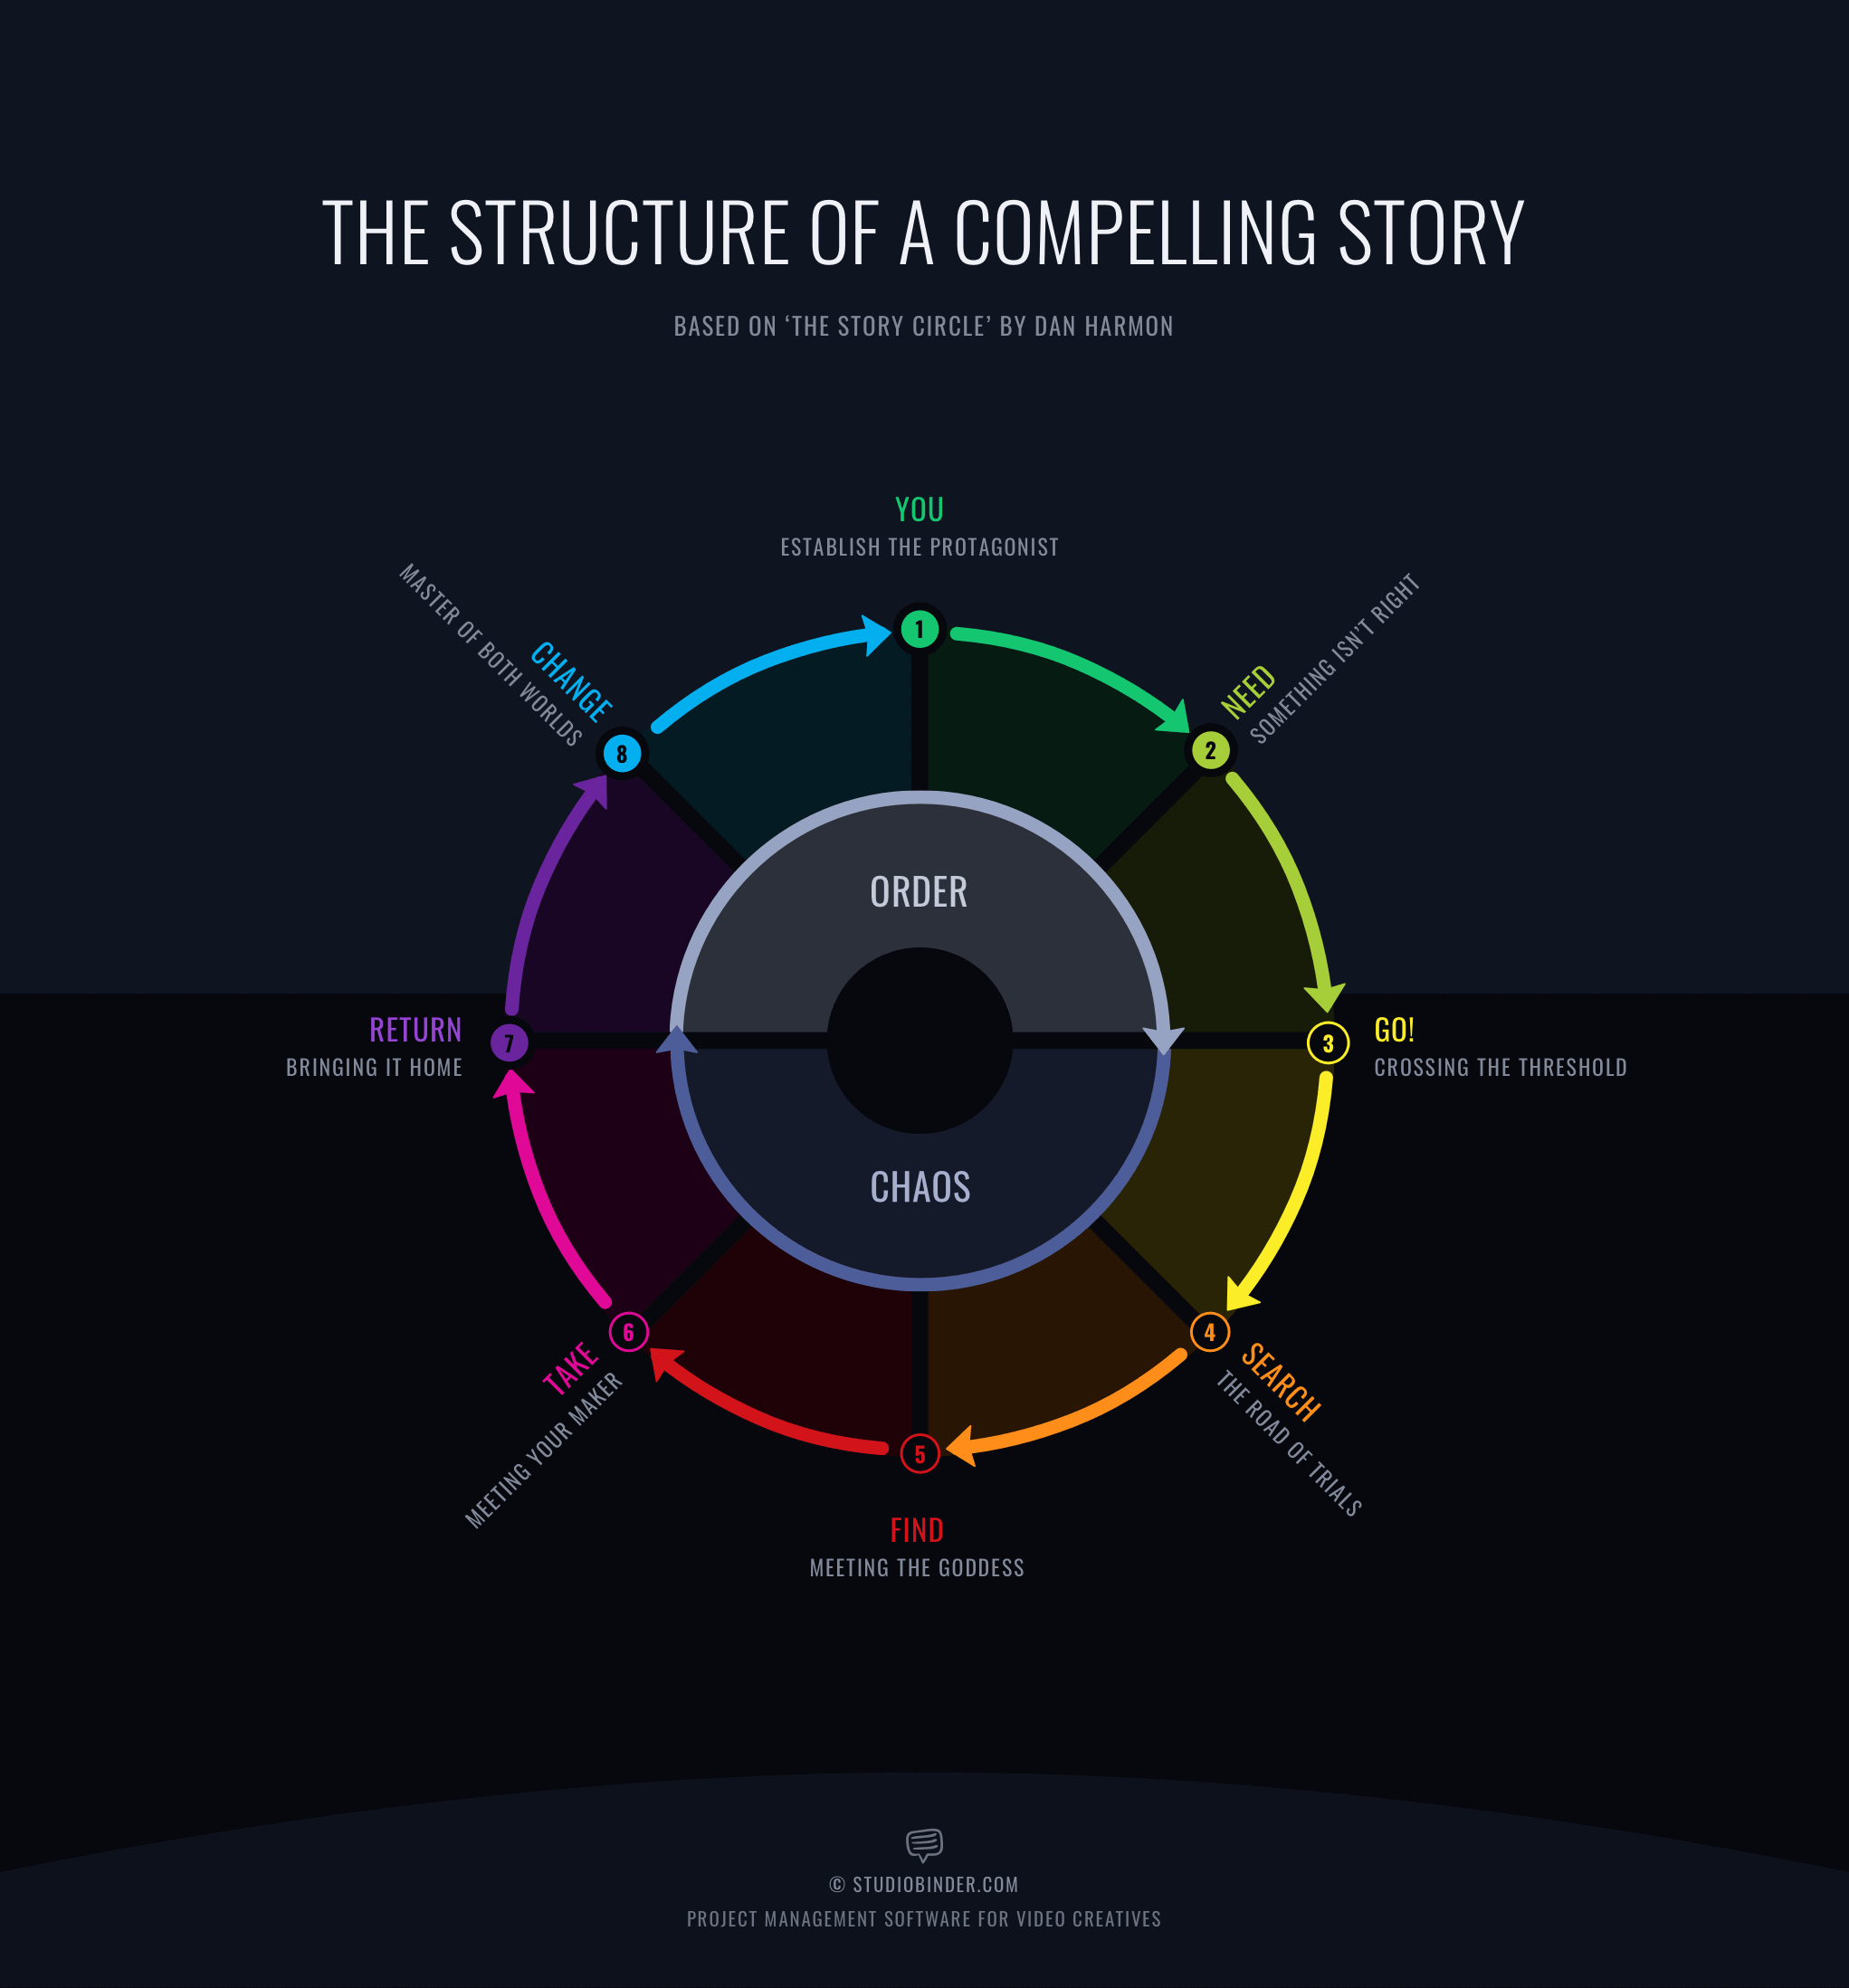 How to Write a Story Outline - Free Script Template - Story Circle Structure by Dan Harmon - StudioBinder